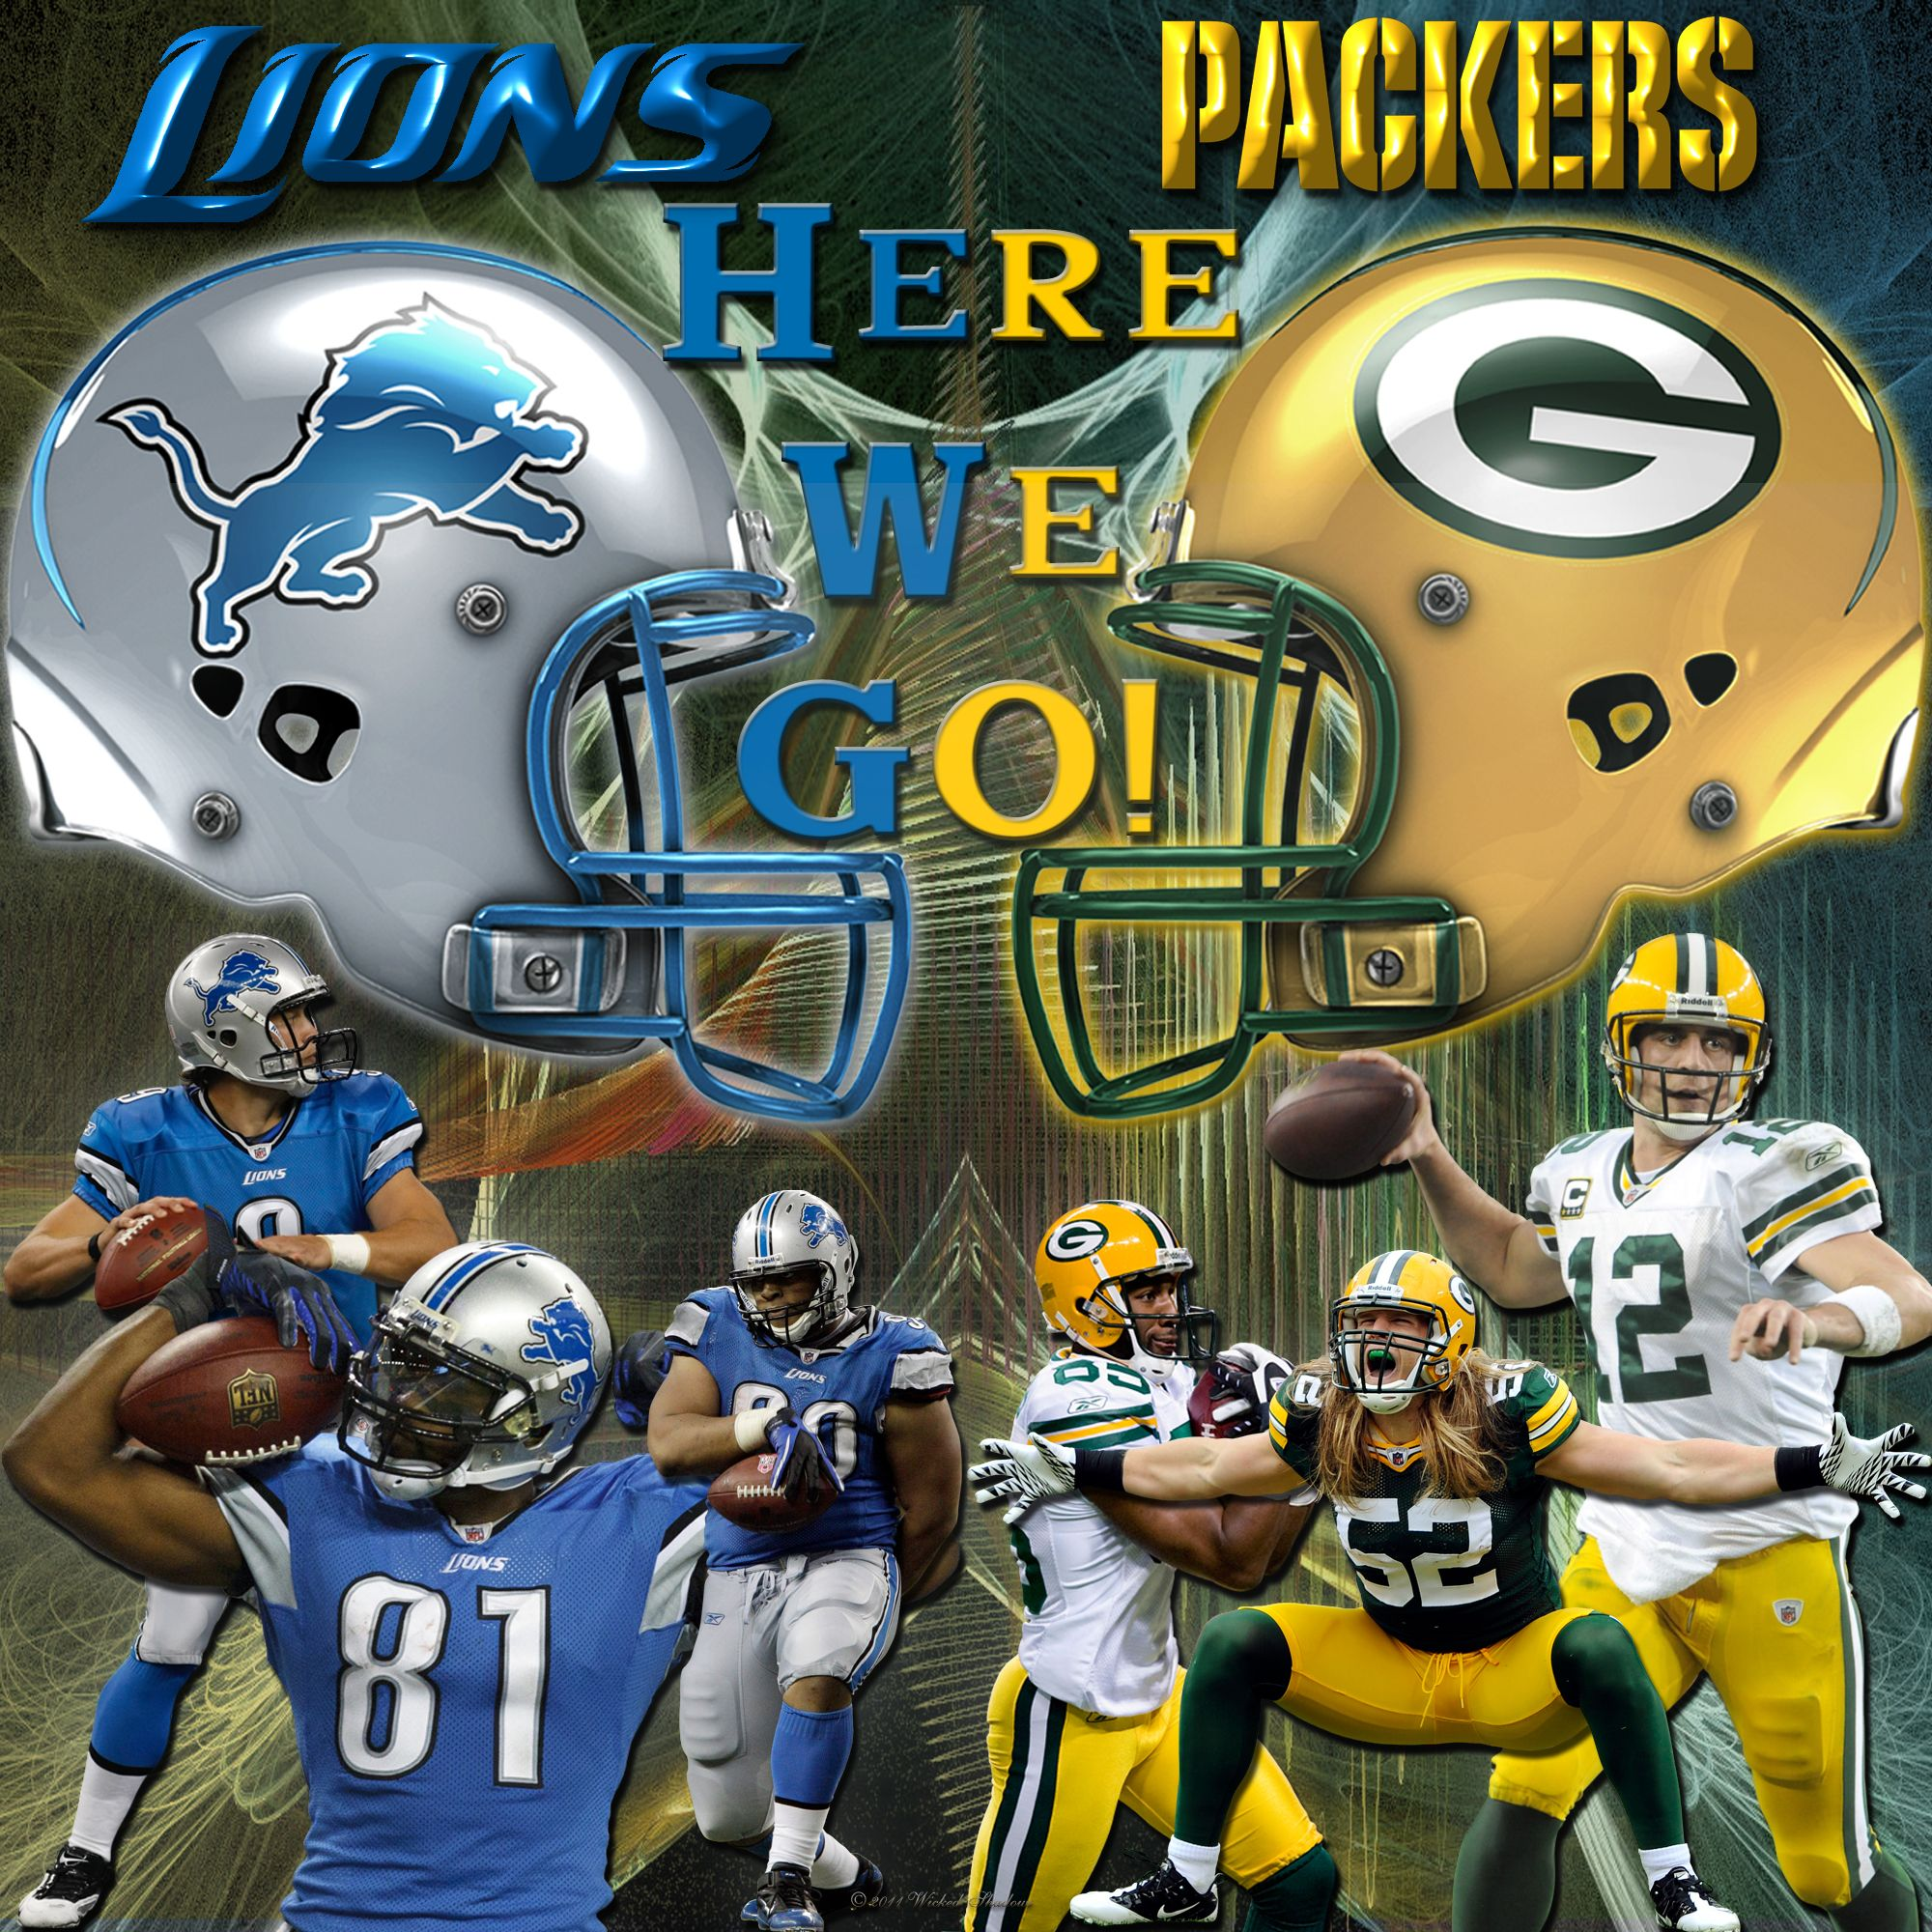 We Need To Play Our Best Game Detroit Lions Lions Green Bay